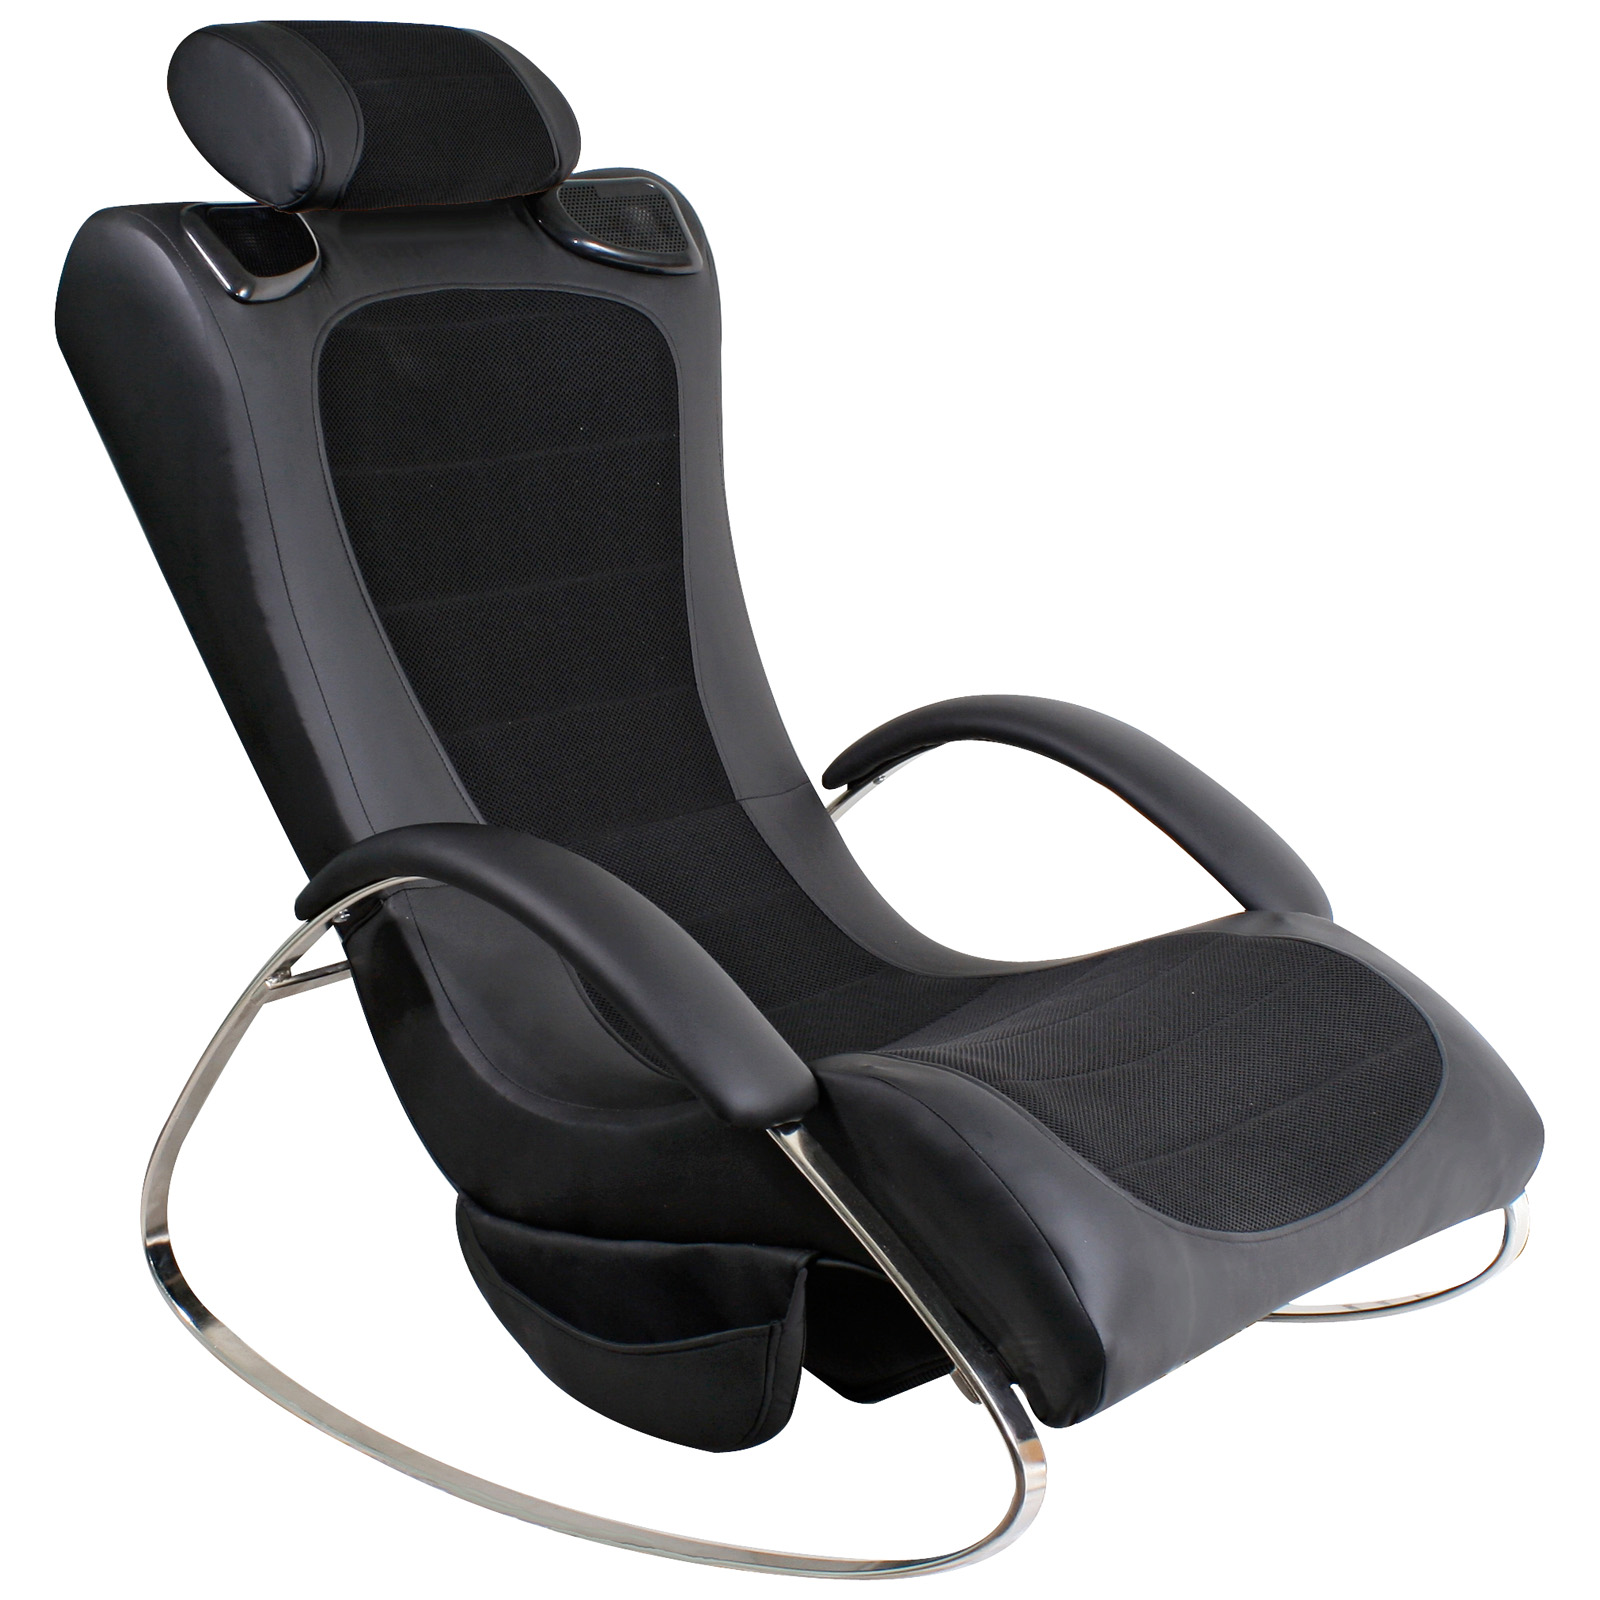 Video Games Chair Lumisource Boomchair Sky Lounger Video Rocker At Hayneedle